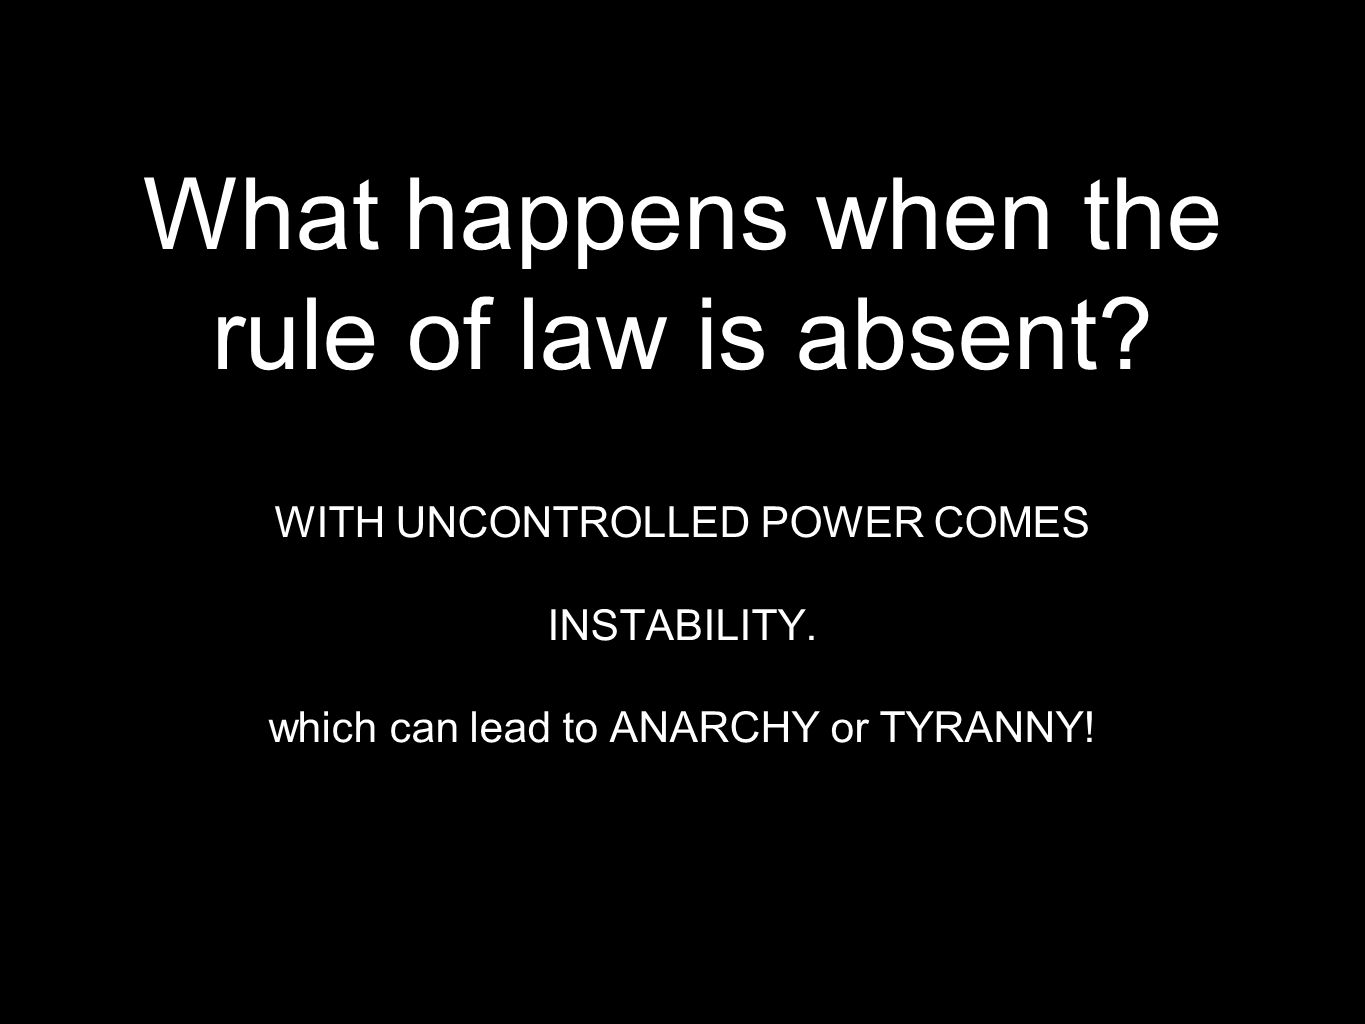 What happens when the rule of law is absent